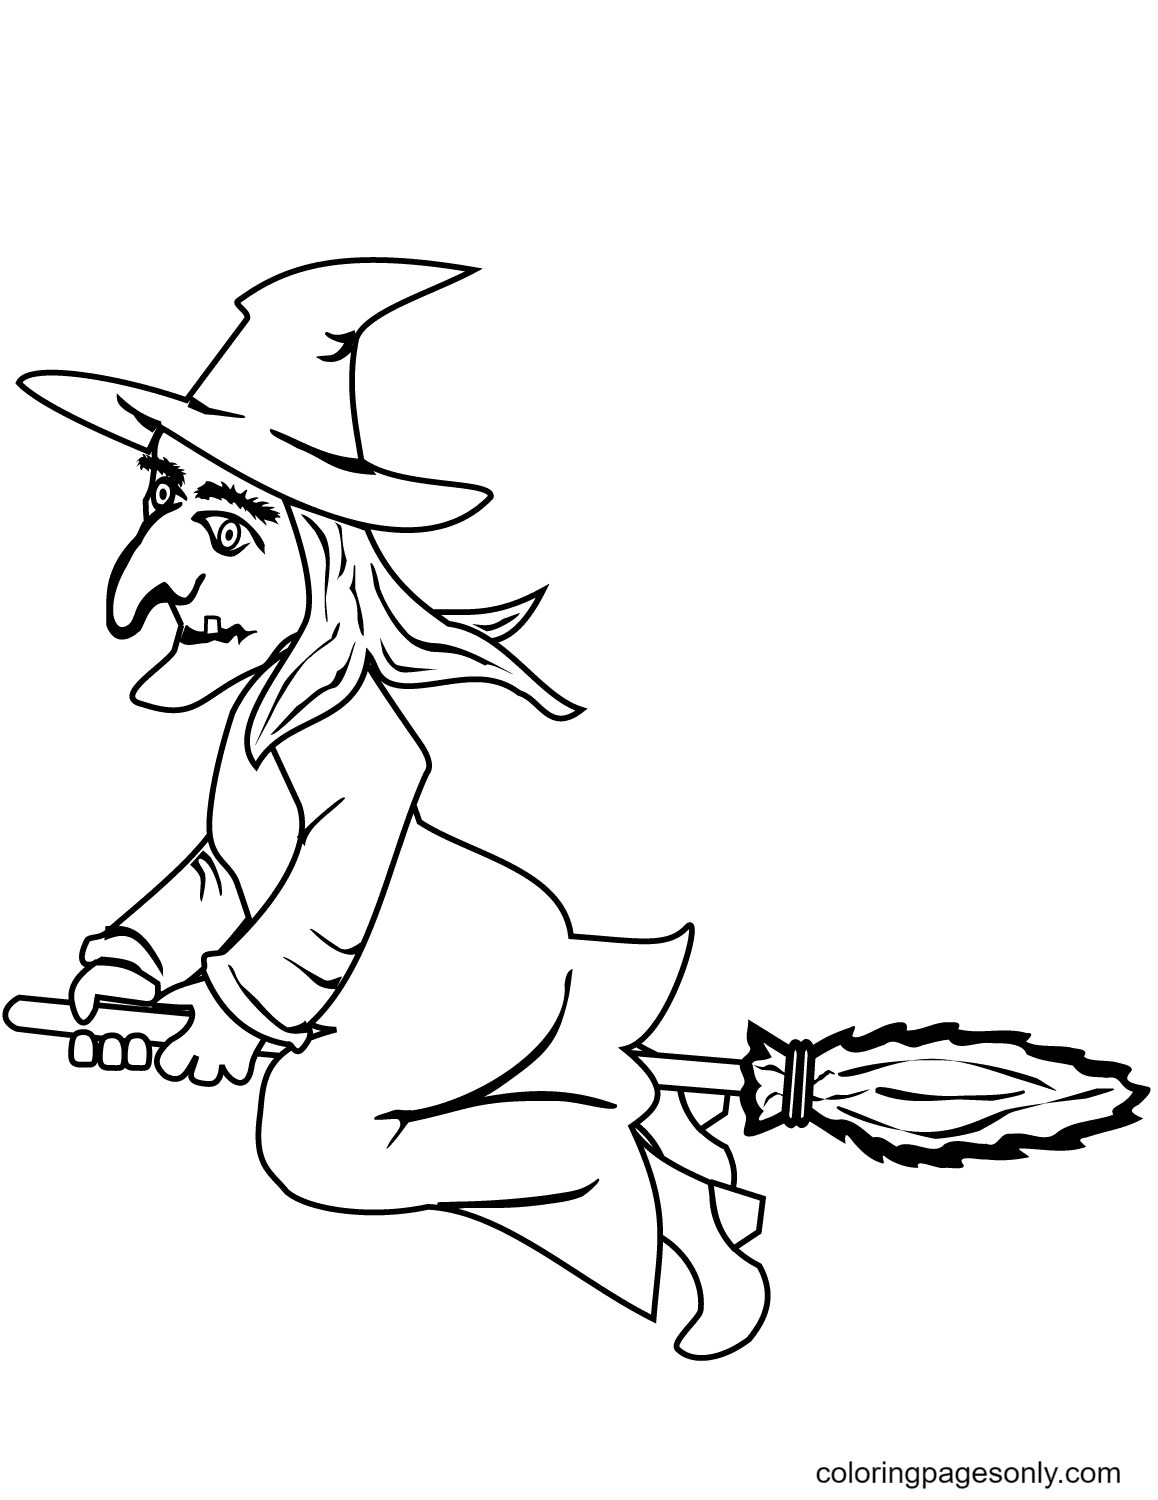 Halloween Witch on a Broom Coloring Page